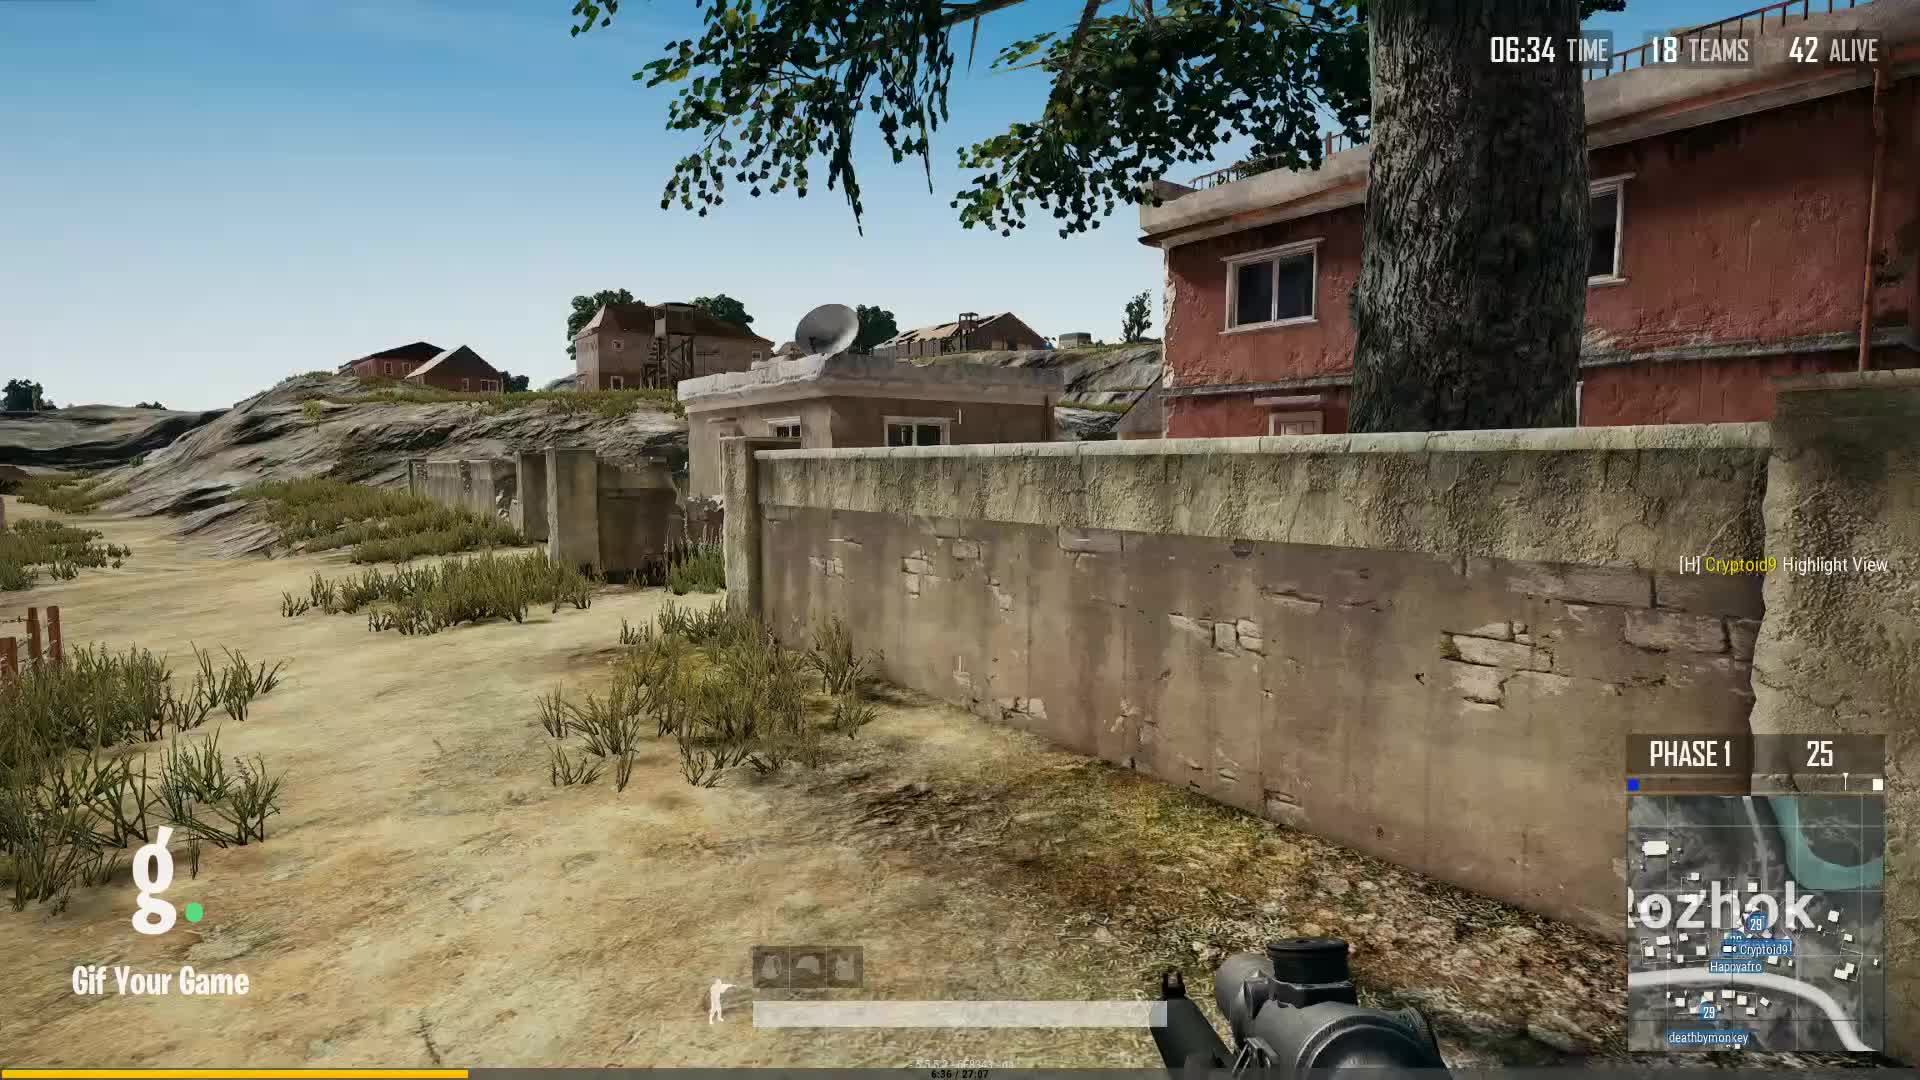 Cryptoid9, Gaming, Gif Your Game, GifYourGame, Kill, PUBG, PUBattlegrounds, ⏱️ Cryptoid9 killed NiceHair GIFs